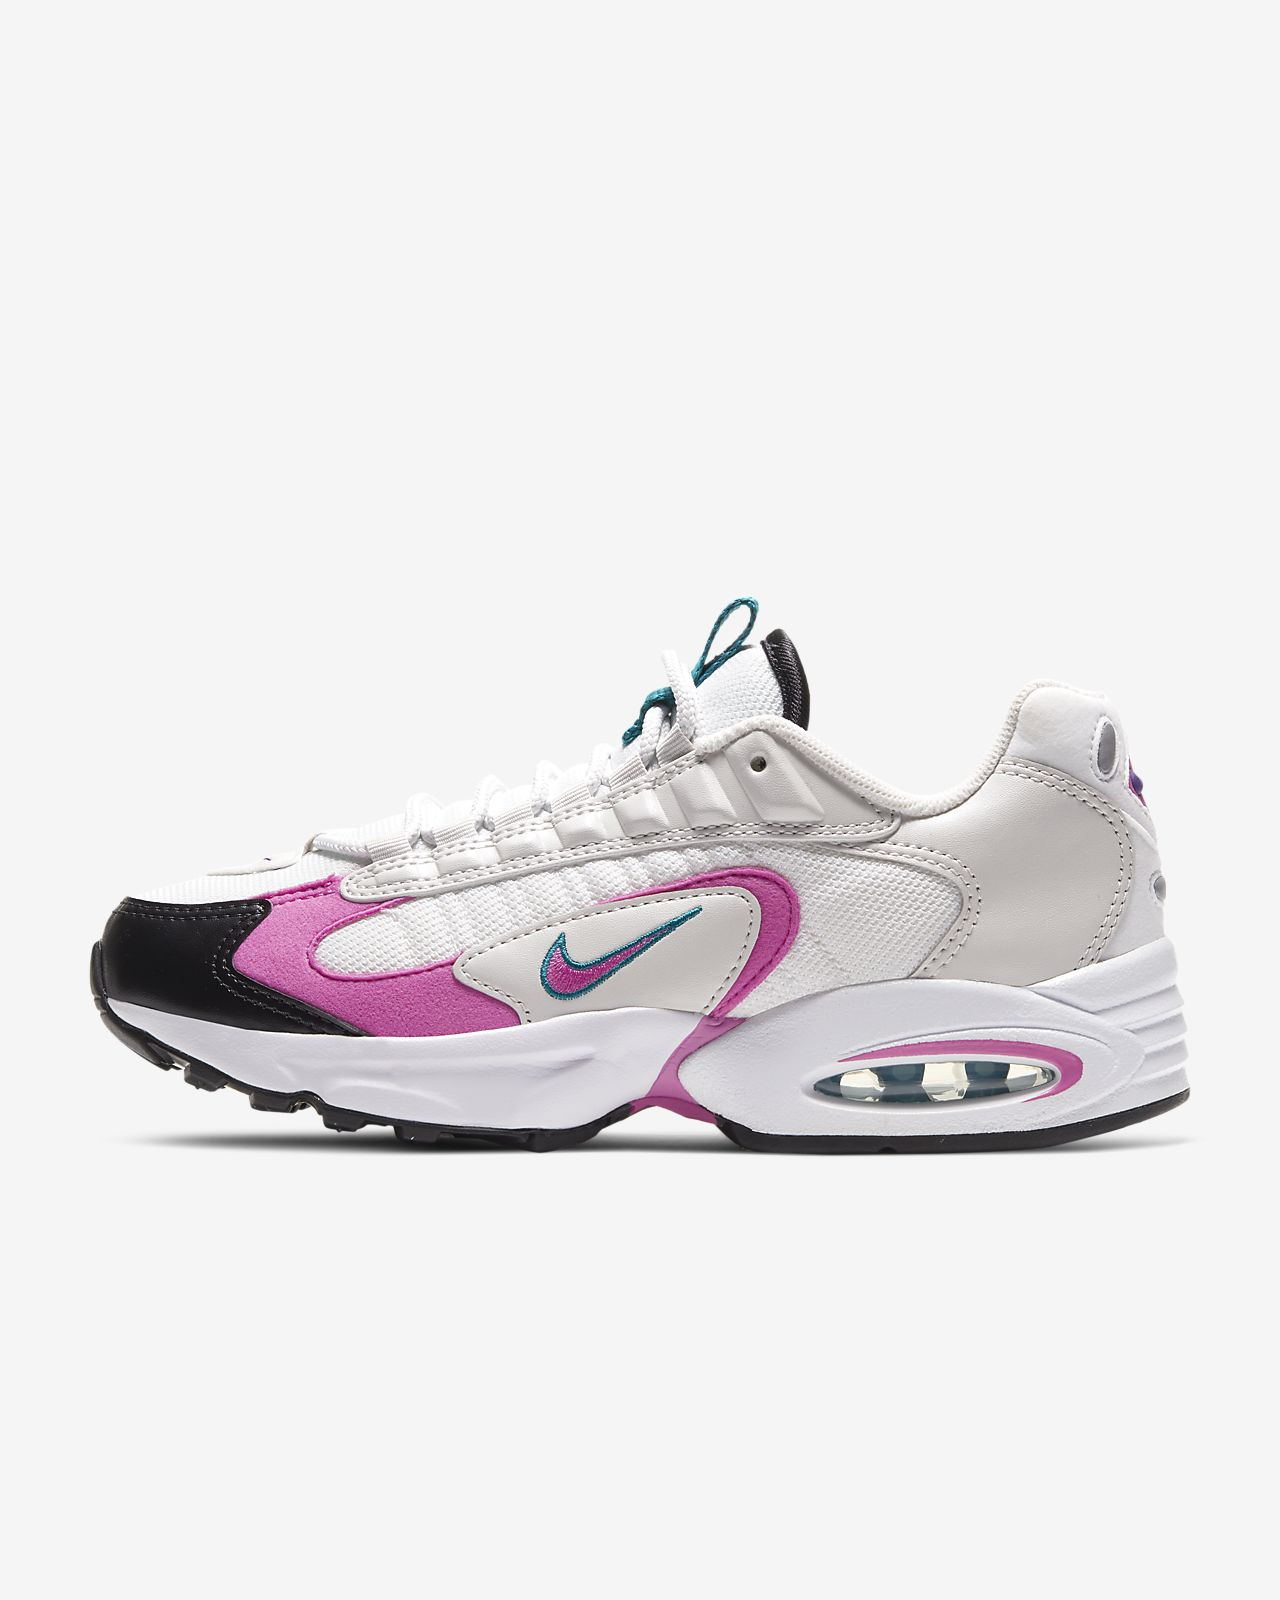 Nike Air Max Triax 96 | Size?